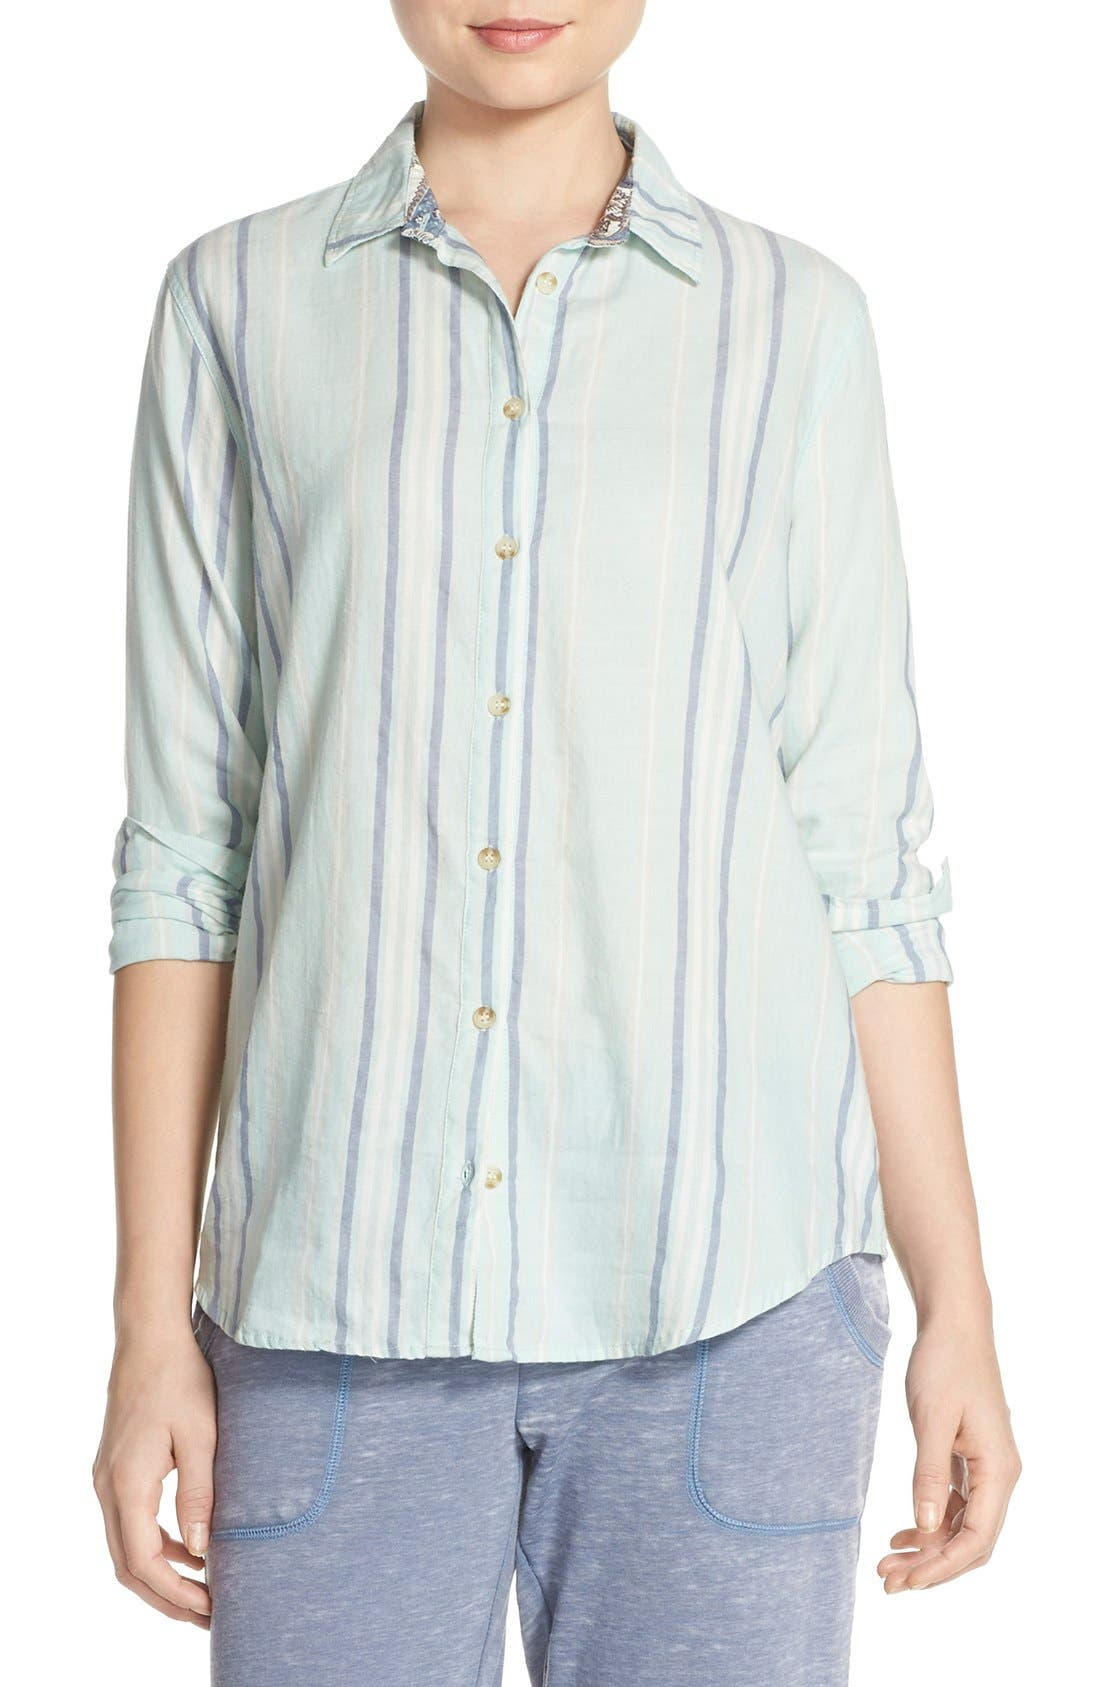 Alternate Image 1 Selected - PJ Salvage Stripe Cotton Twill Top